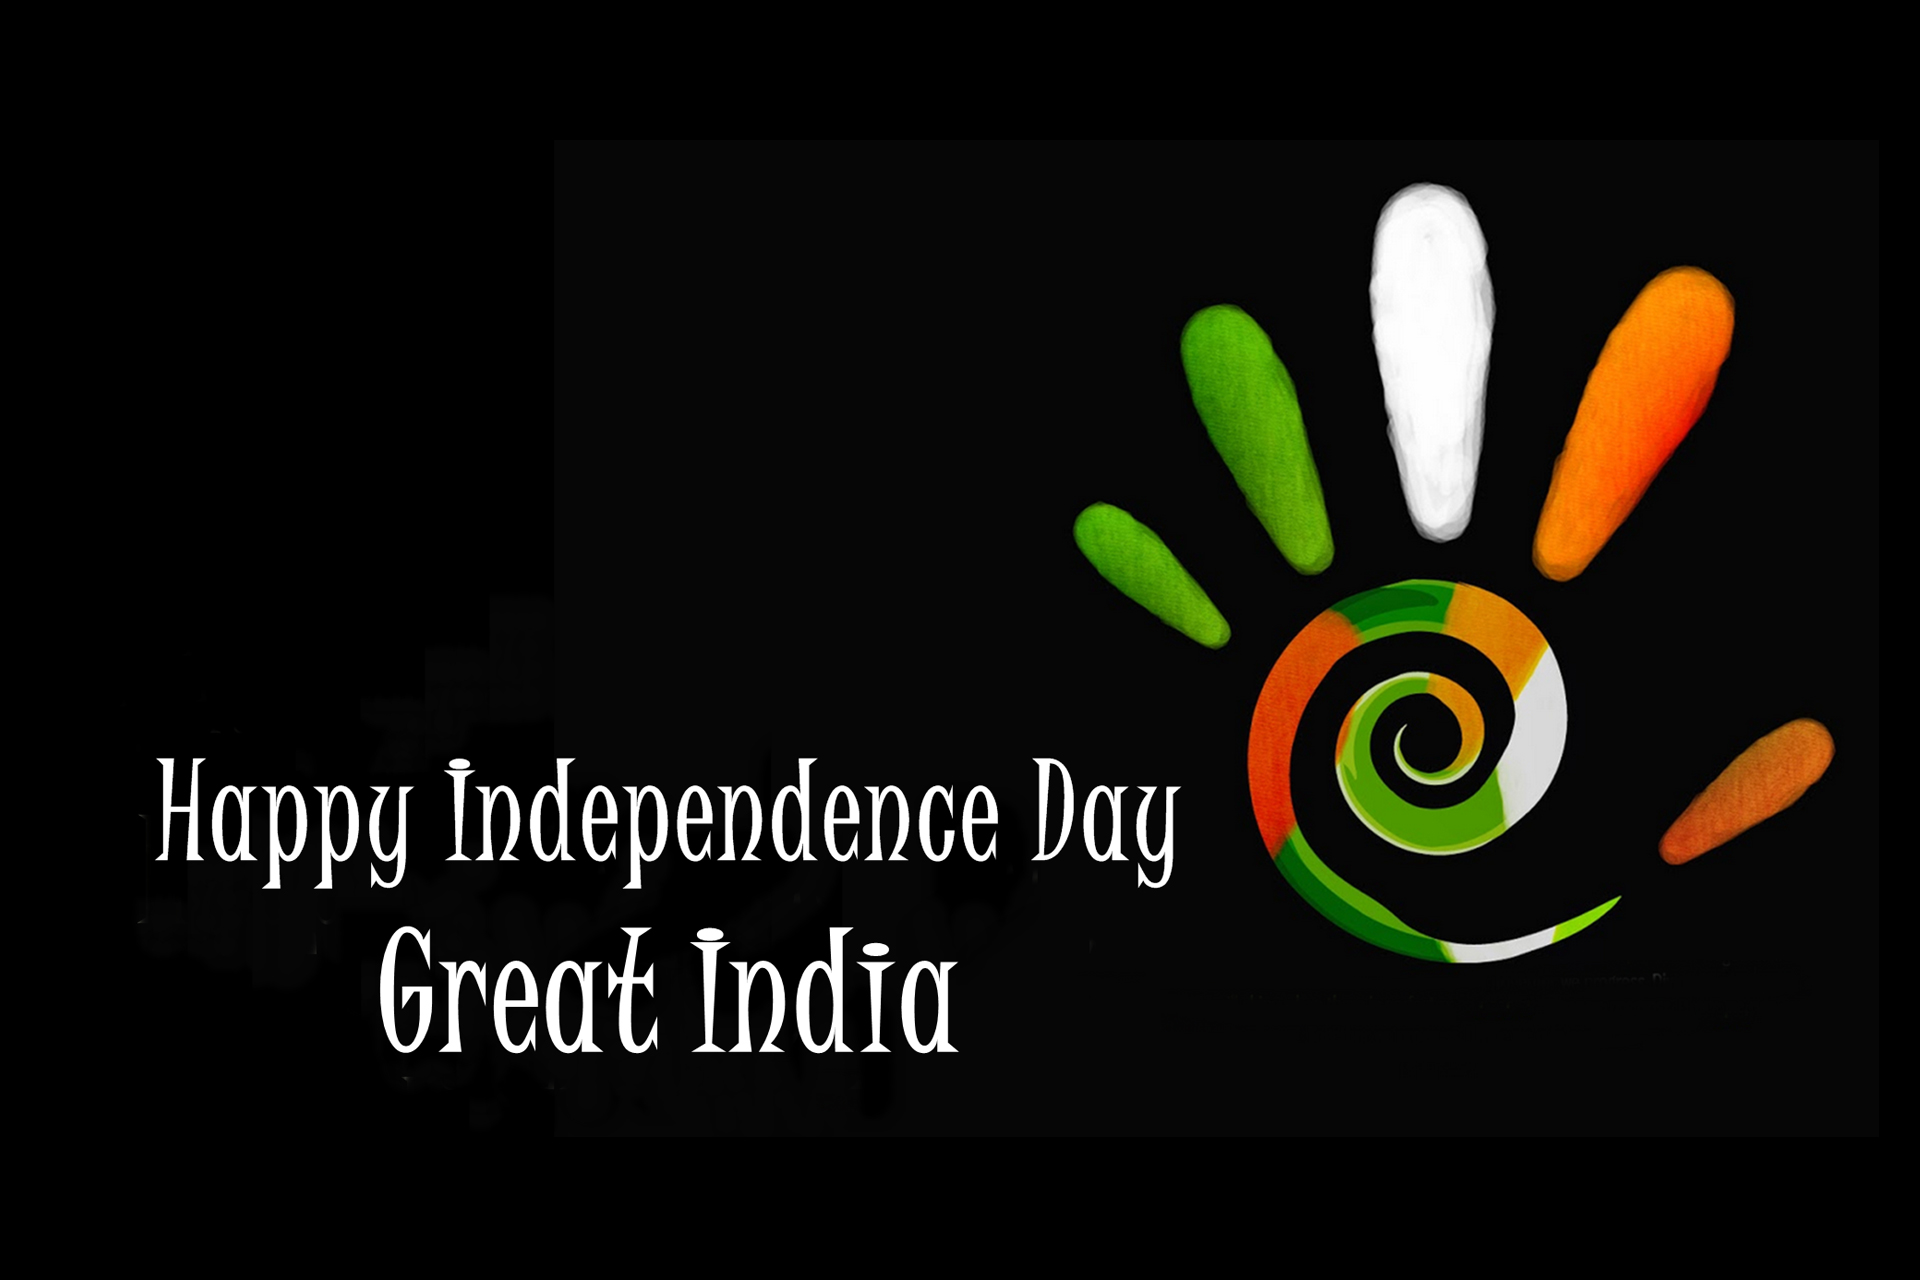 Happy Independence Day India Awesome Hd Wallpapers Page 2 Of 2